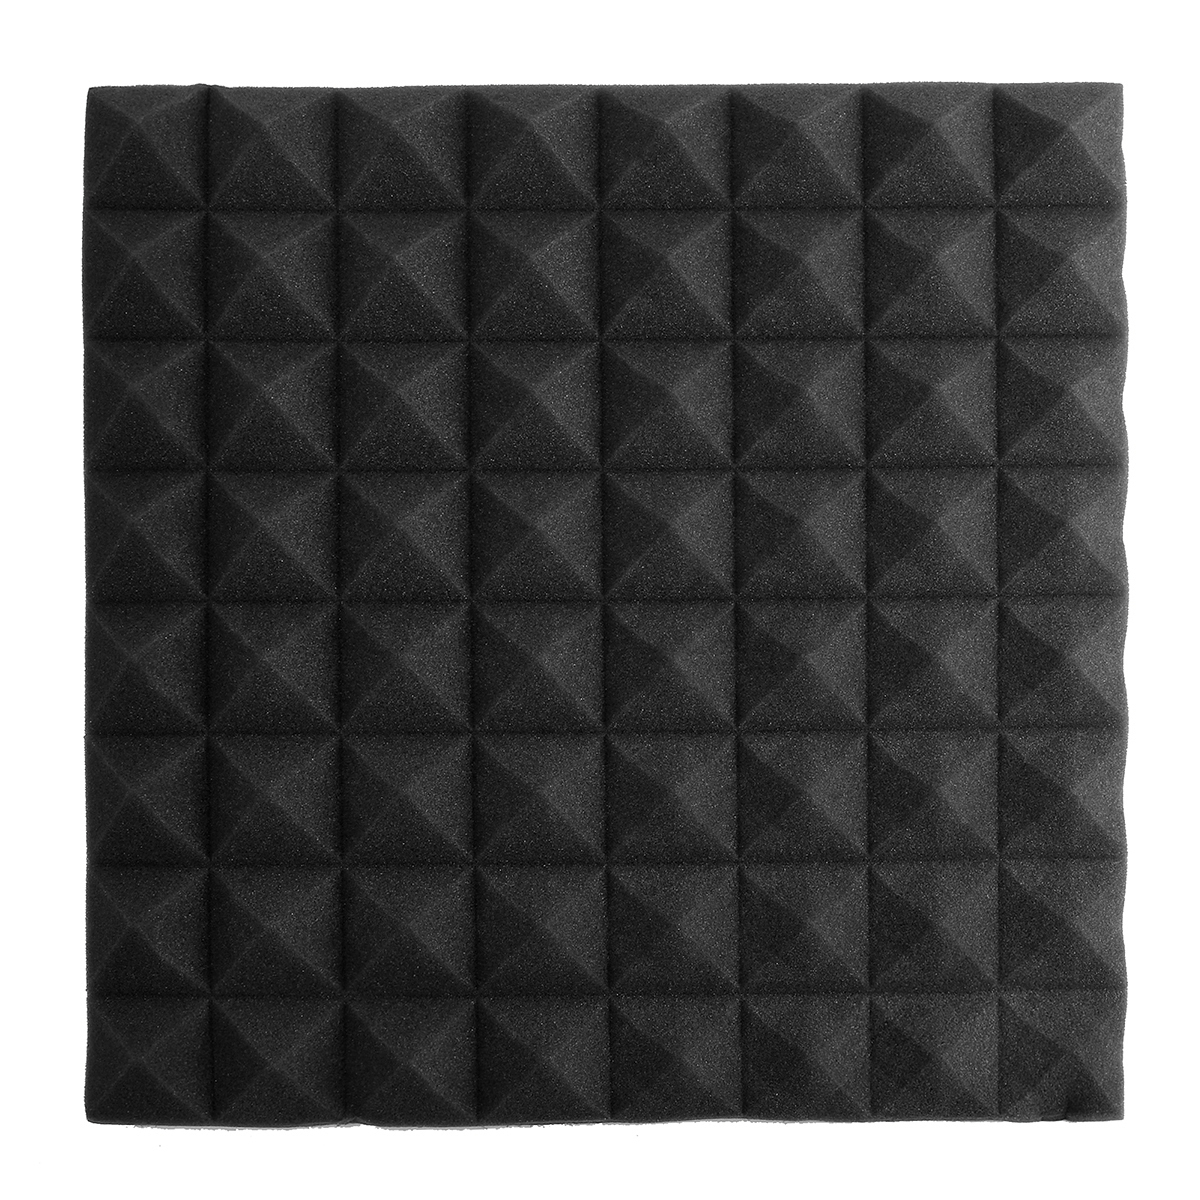 20 100pcs acoustic foam sound stop absorption treatment proofing panel 20x20x2 ebay. Black Bedroom Furniture Sets. Home Design Ideas